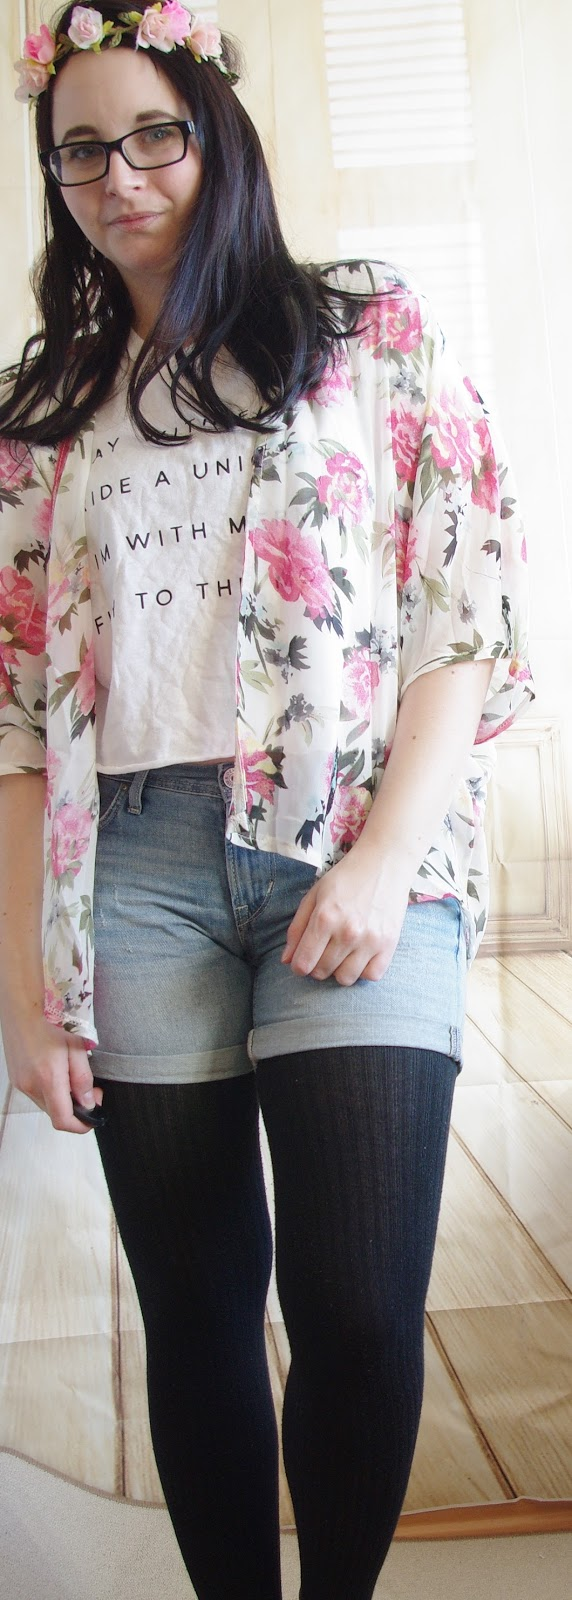 Outfit Denim Shorts, Tights, Crop Top and Kimono